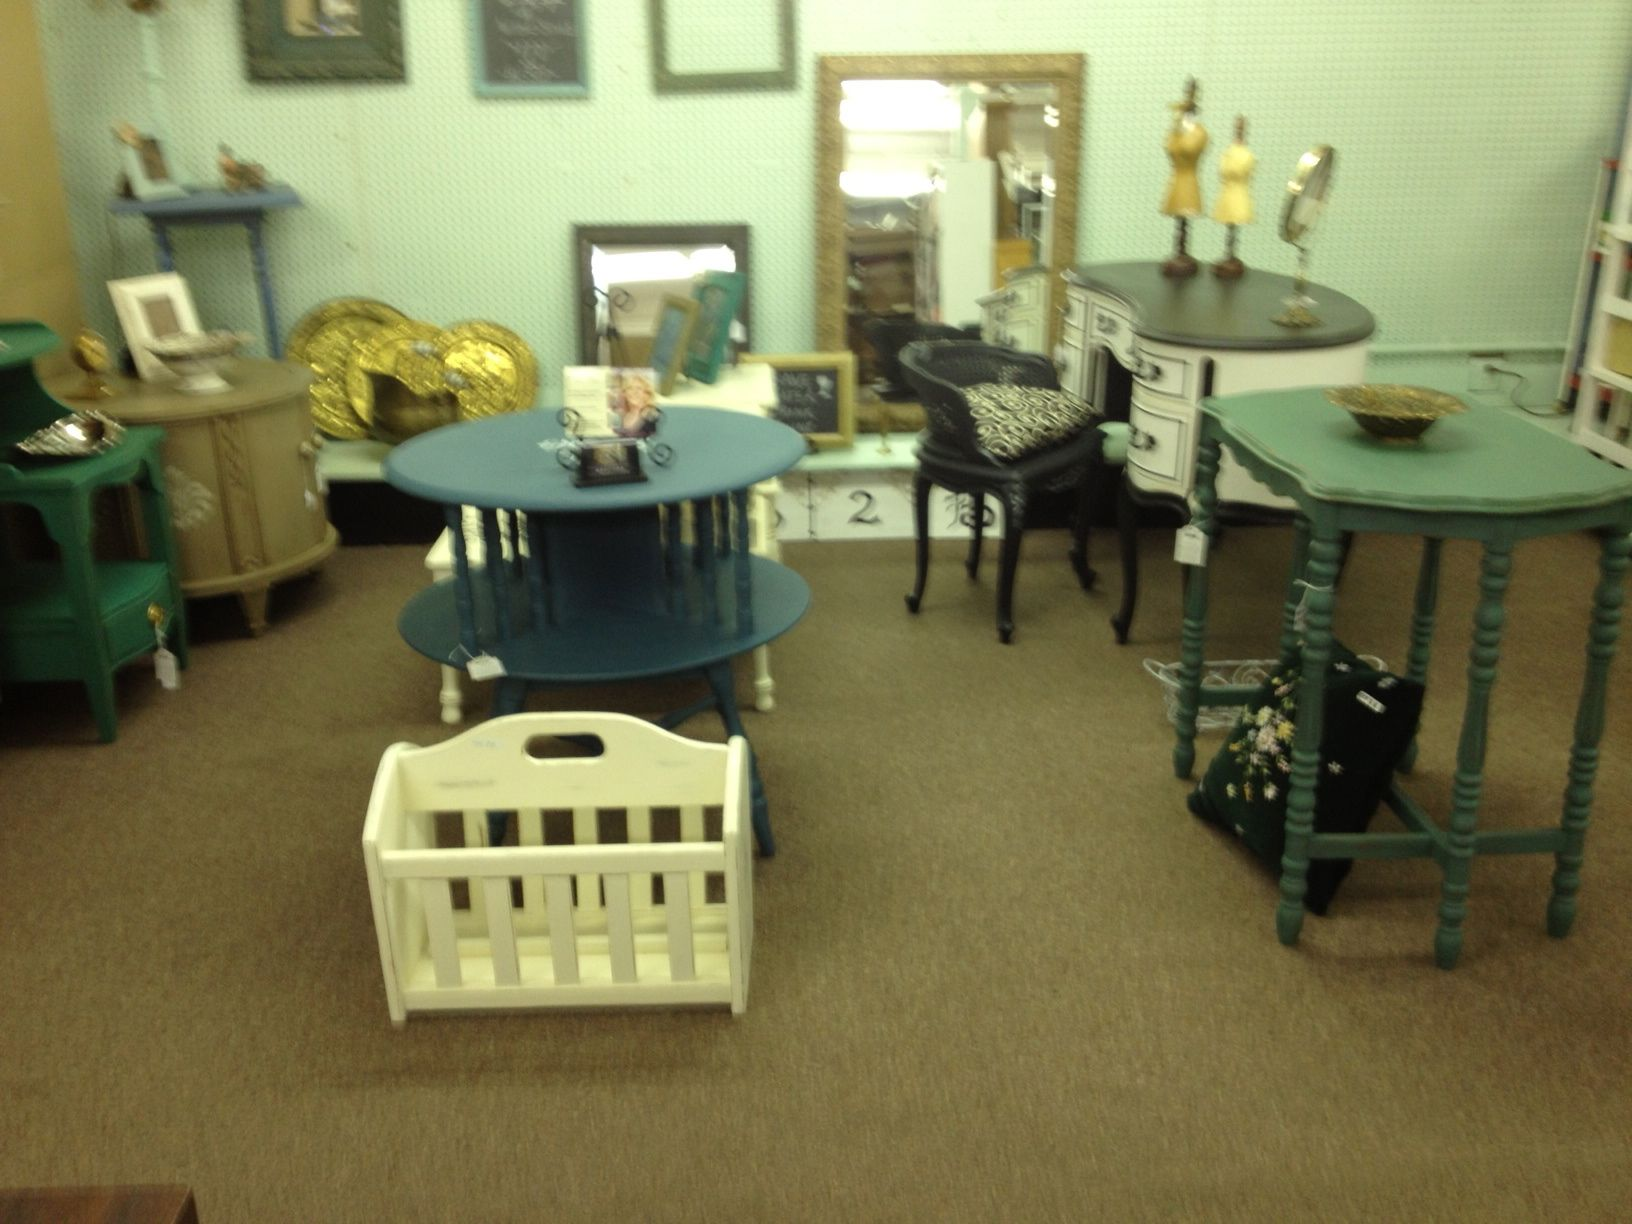 My Space At The Eclectic Elephant In Down Town Cheyenne · Furniture  ProjectsPainted FurnitureElephant